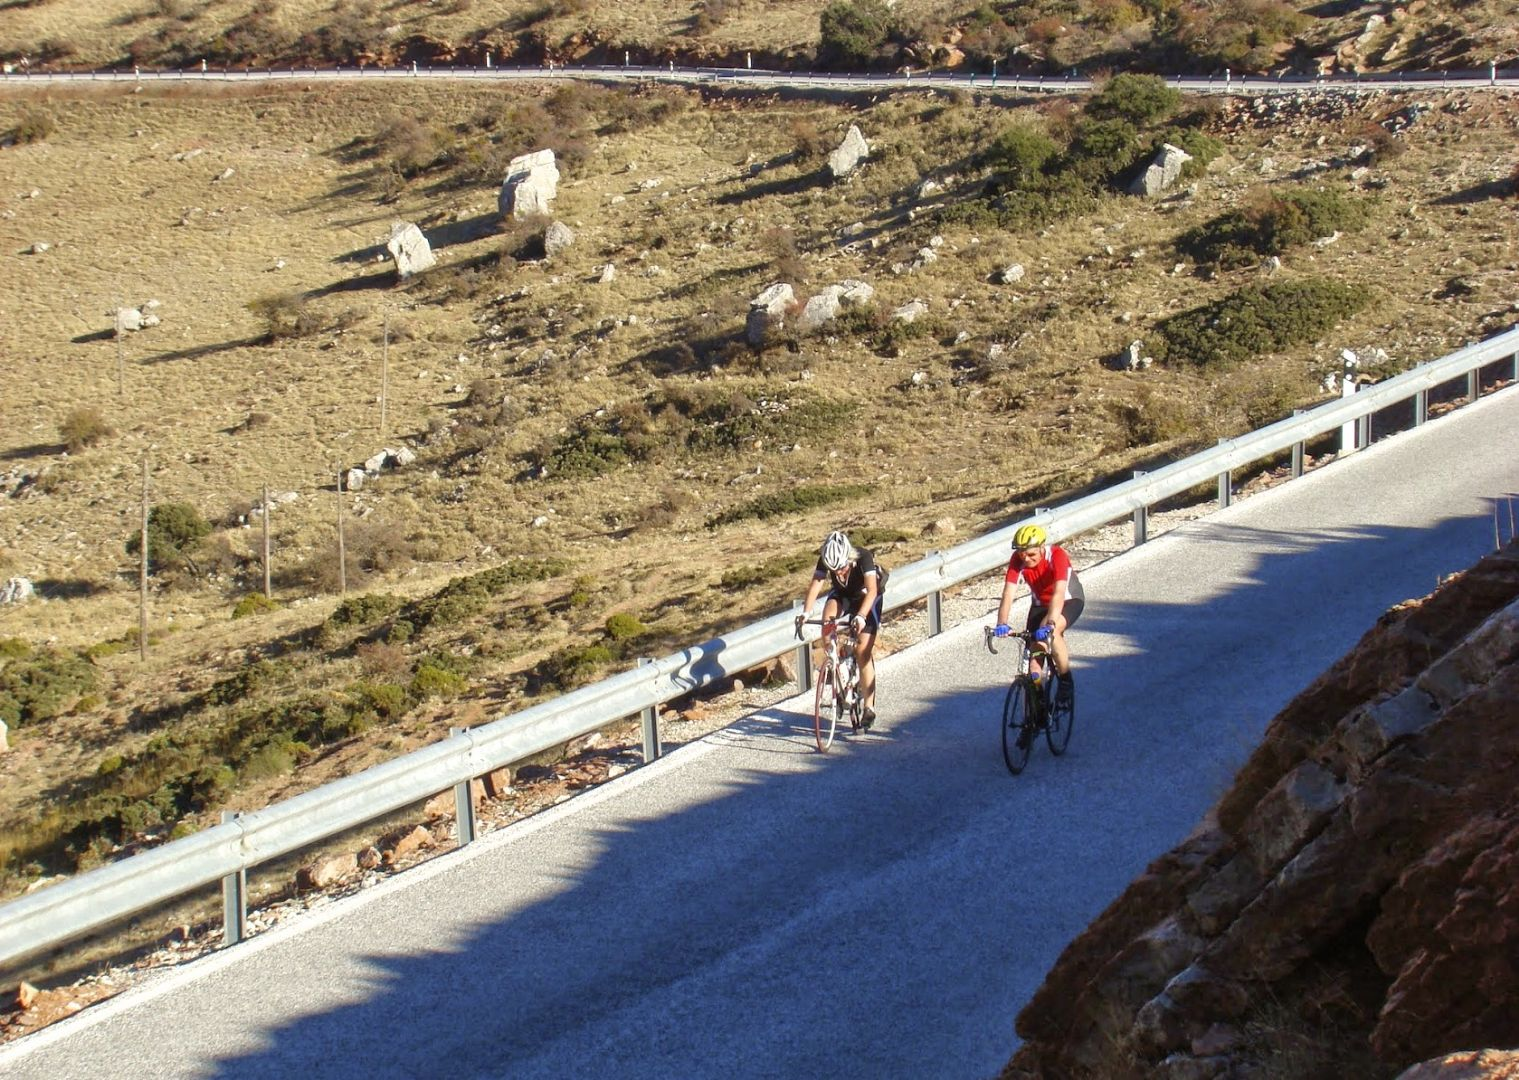 2013-11-12 15.50.59.jpg - Southern Spain - Roads of Ronda - Self-Guided Road Cycling Holiday - Road Cycling